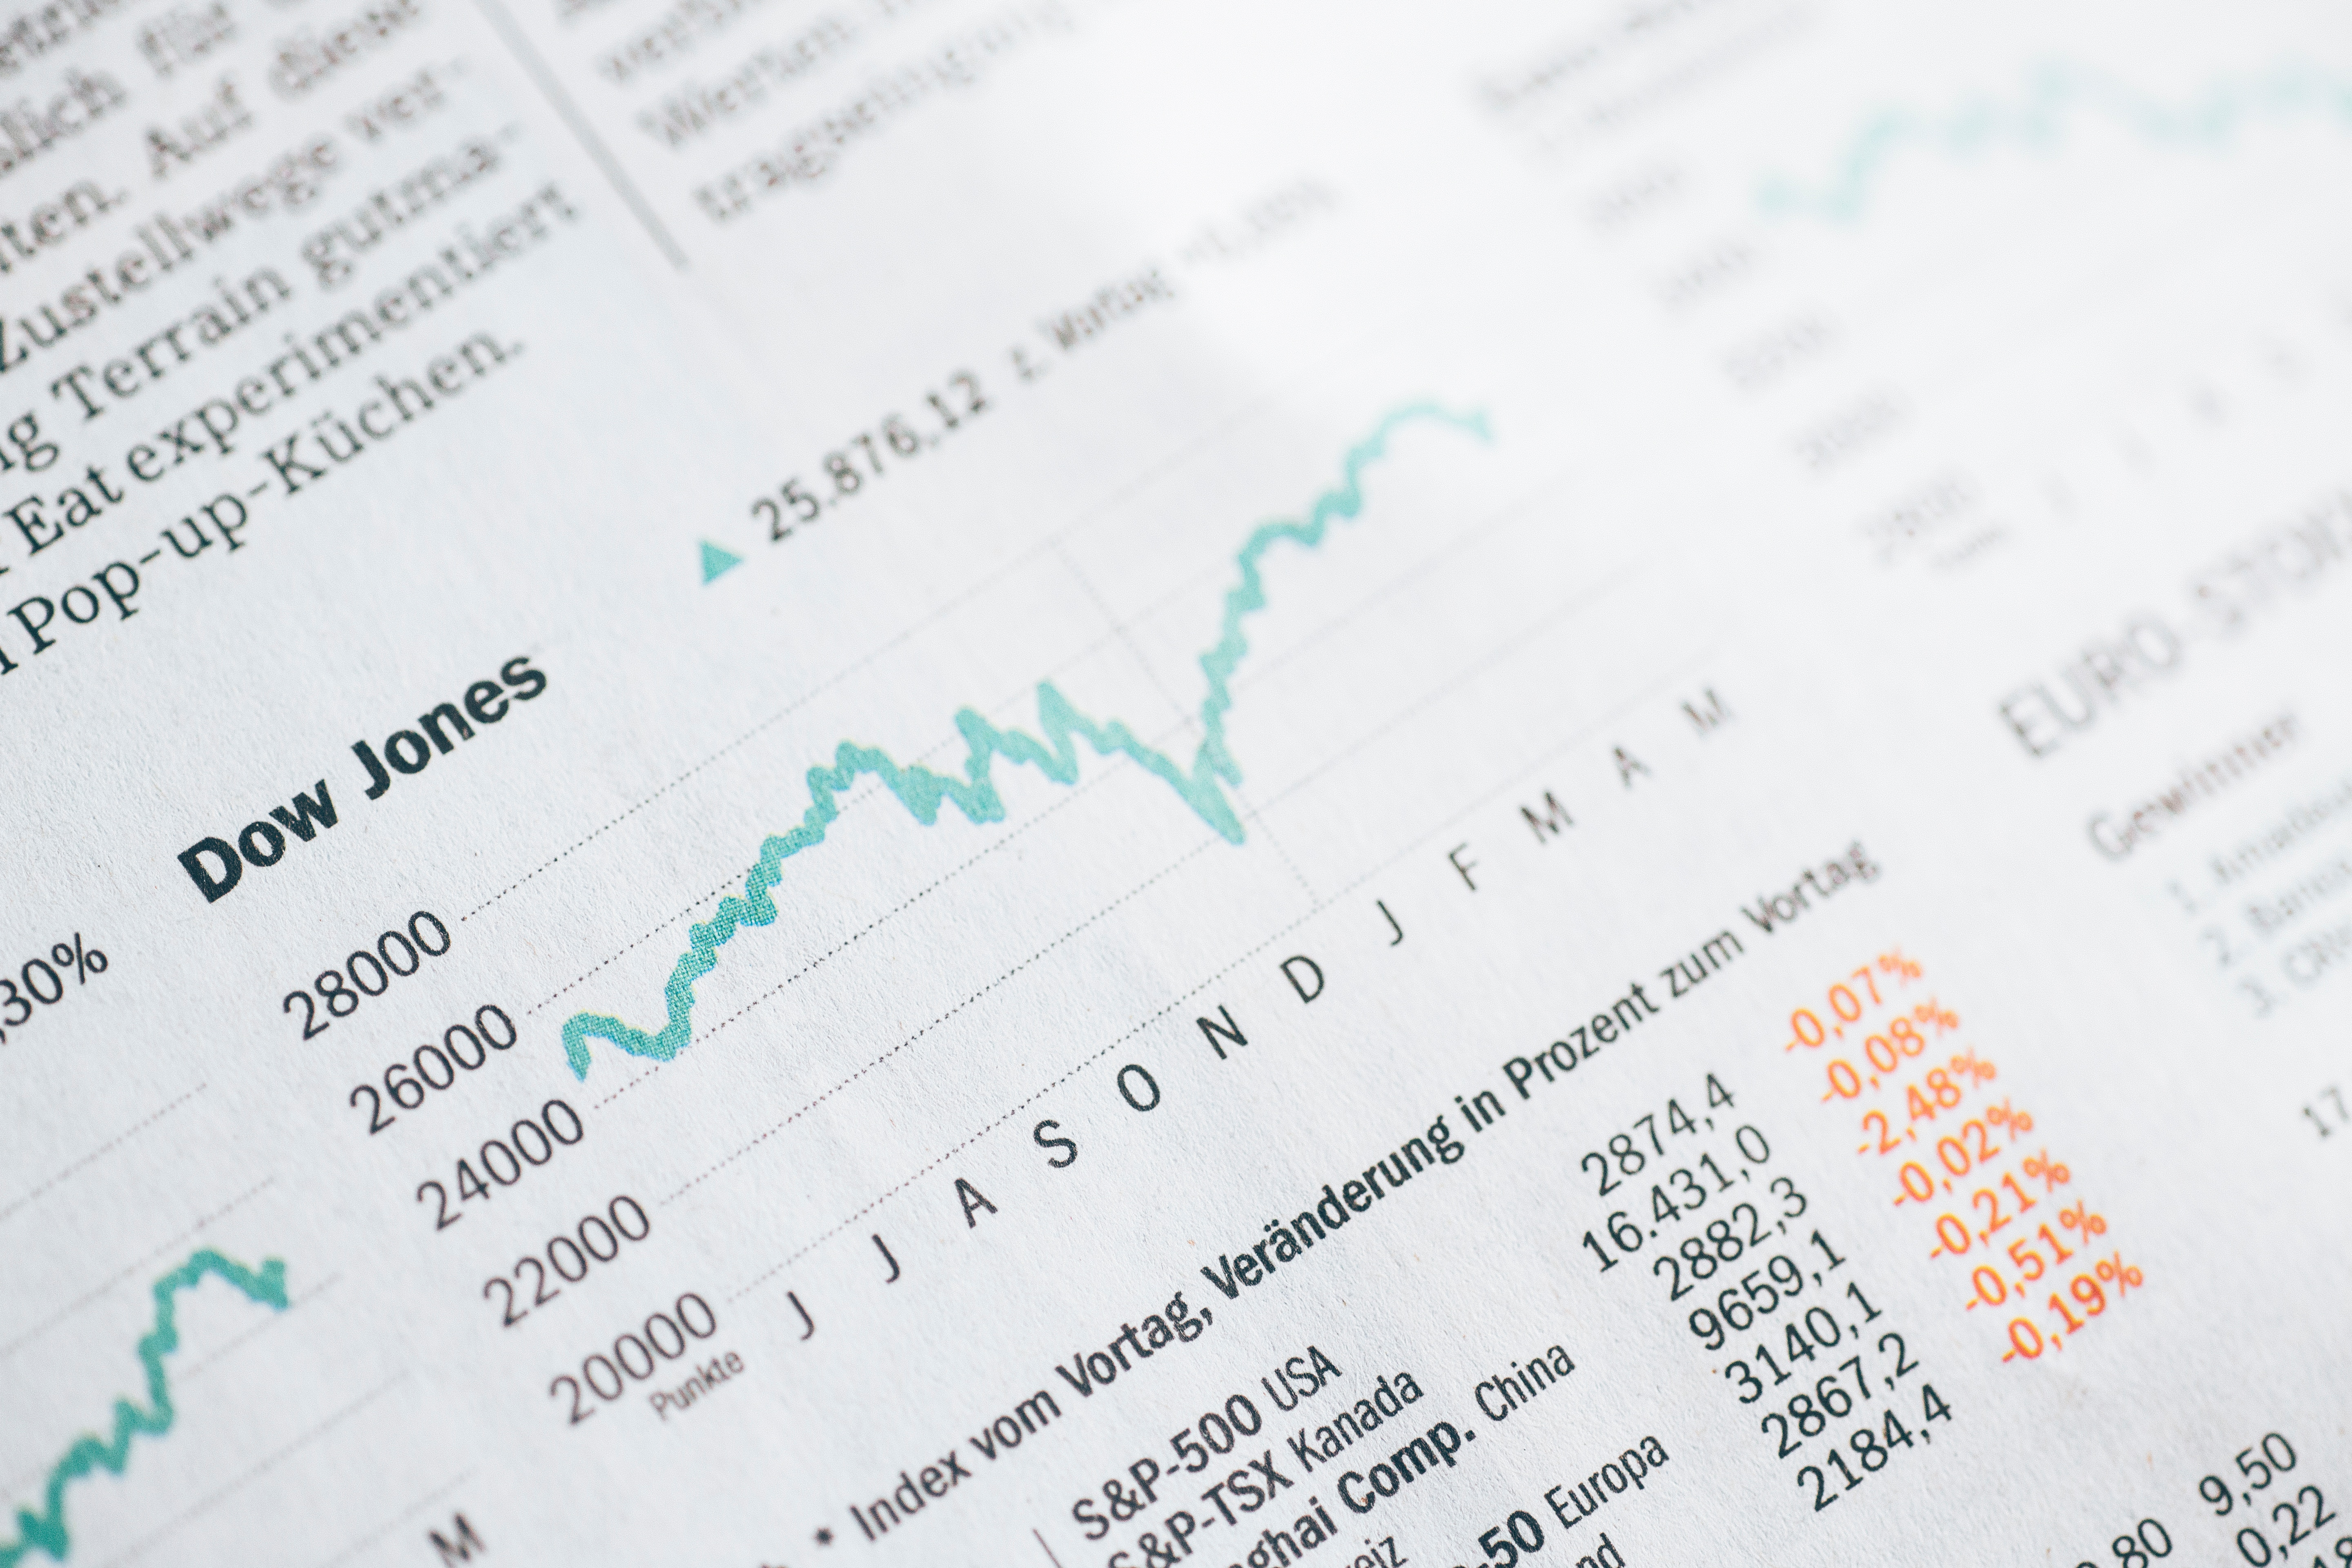 Can Stocks Go Up in A Bear Market? (What to Look For)